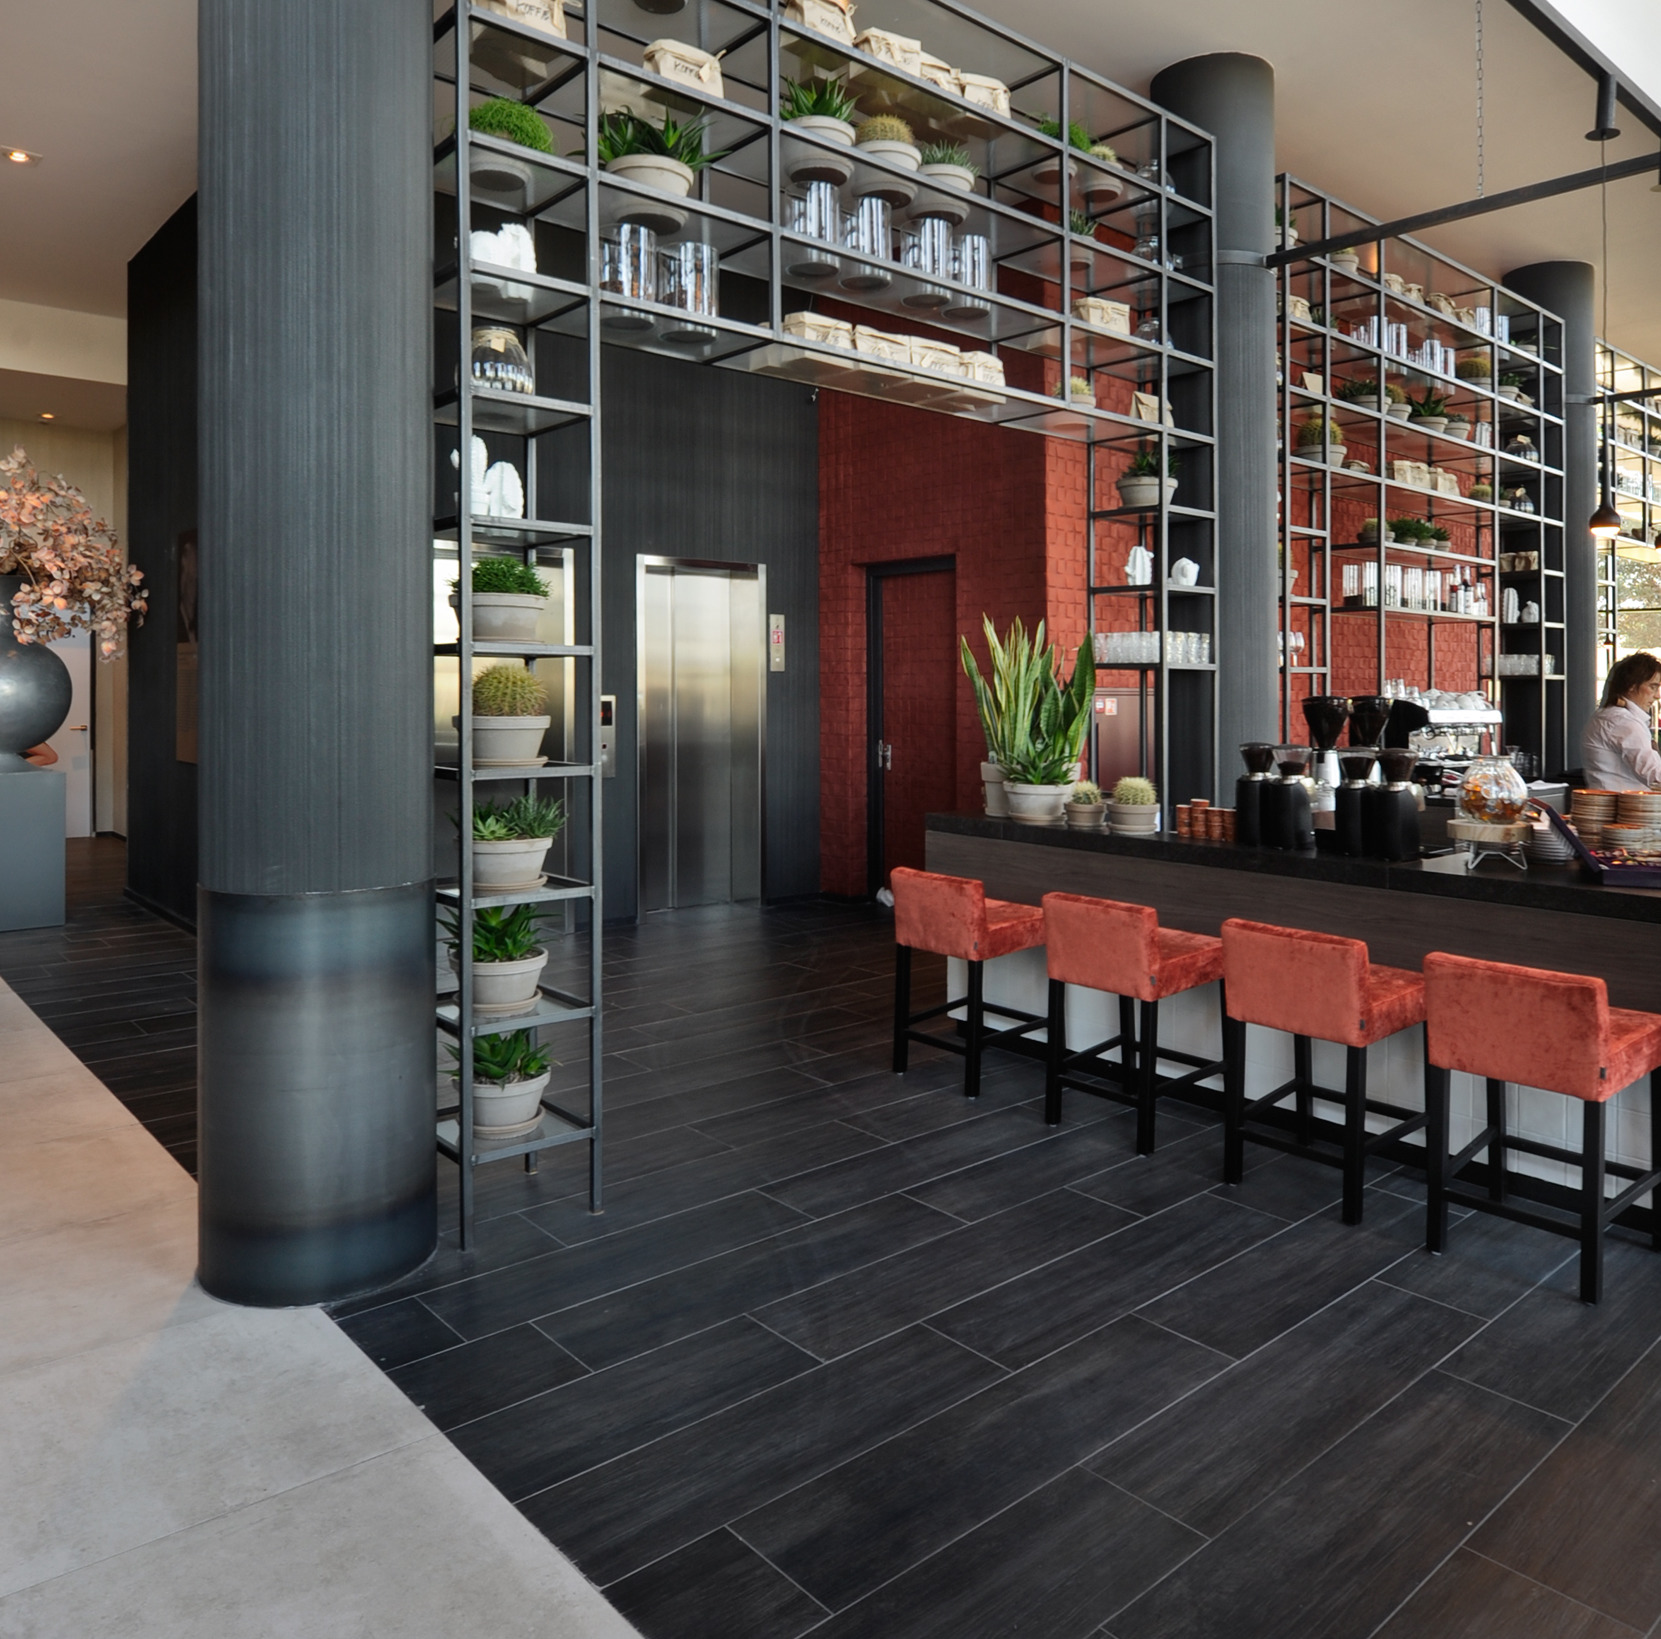 Van Der Valk Vianen Zwembad Find Your Hotel Or Restaurant Valk